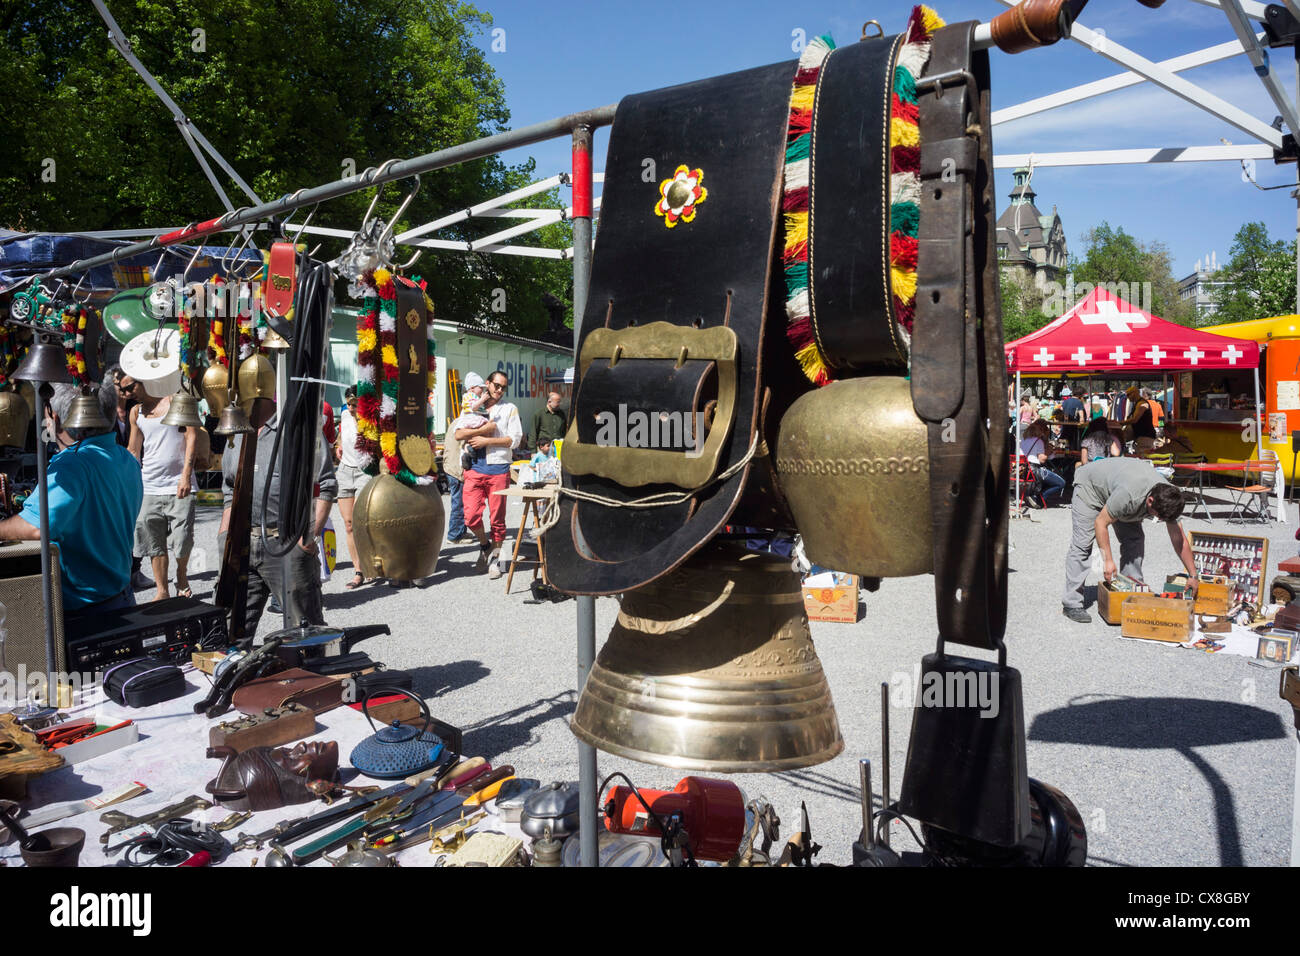 Kanzlei Flea Market , Zurich, Switzerland - Stock Image